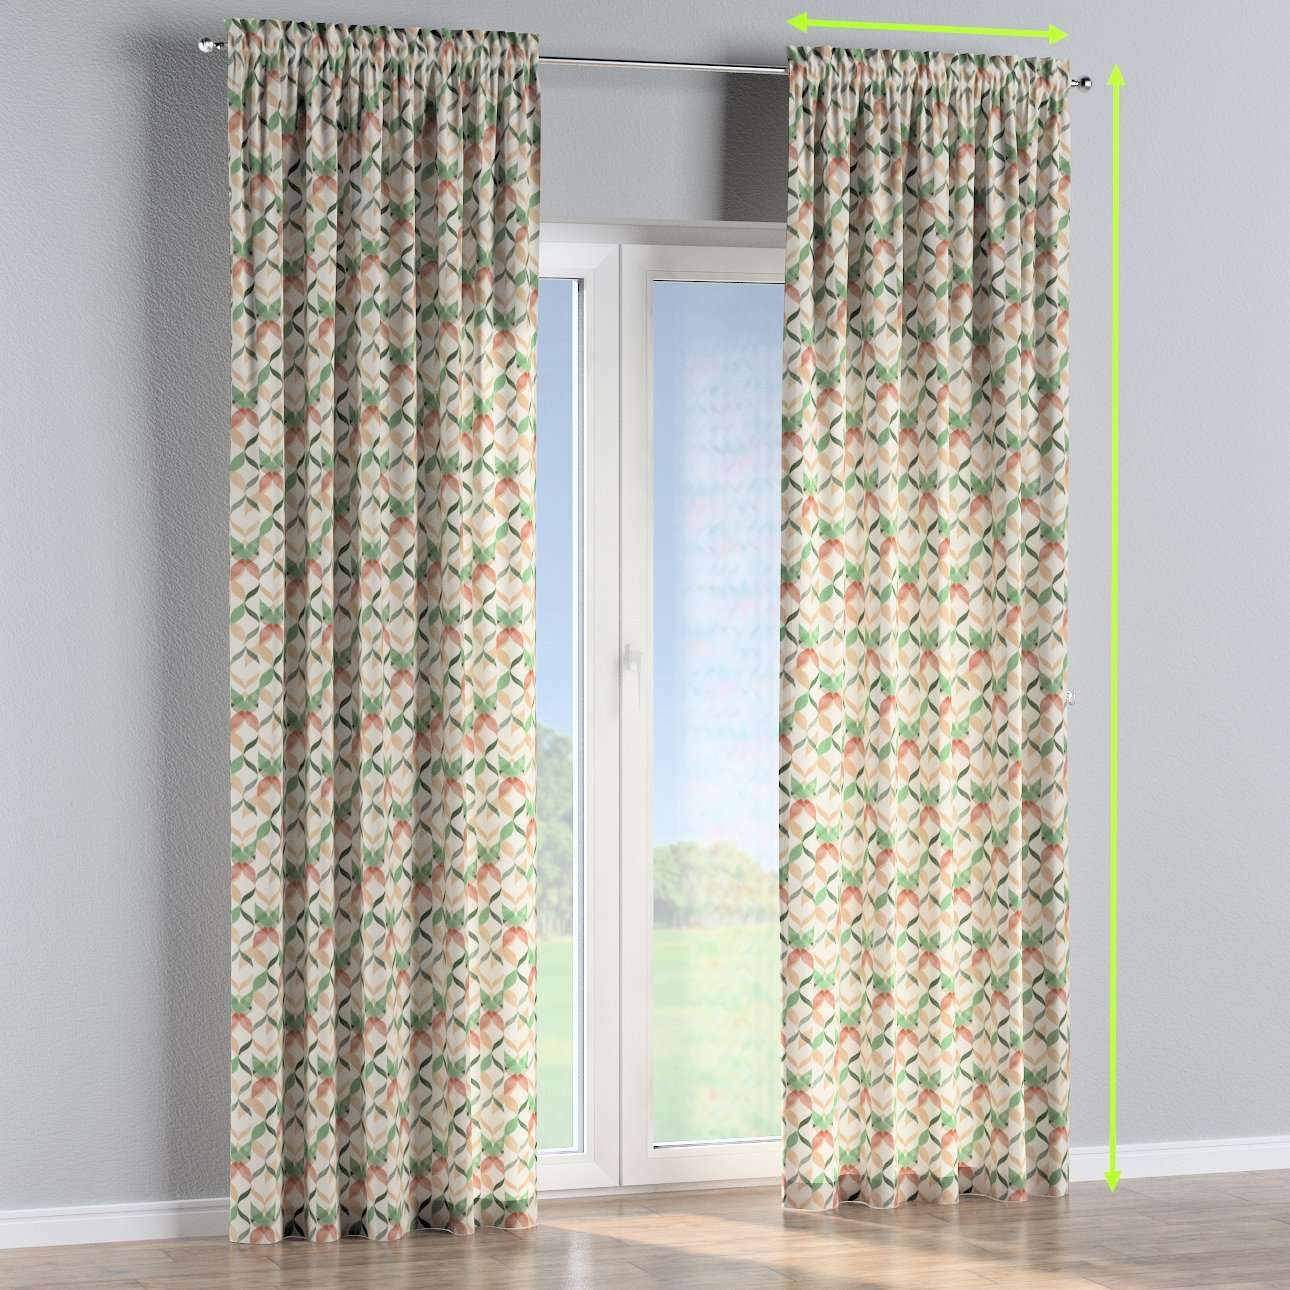 Slot and frill lined curtains in collection Urban Jungle, fabric: 141-64